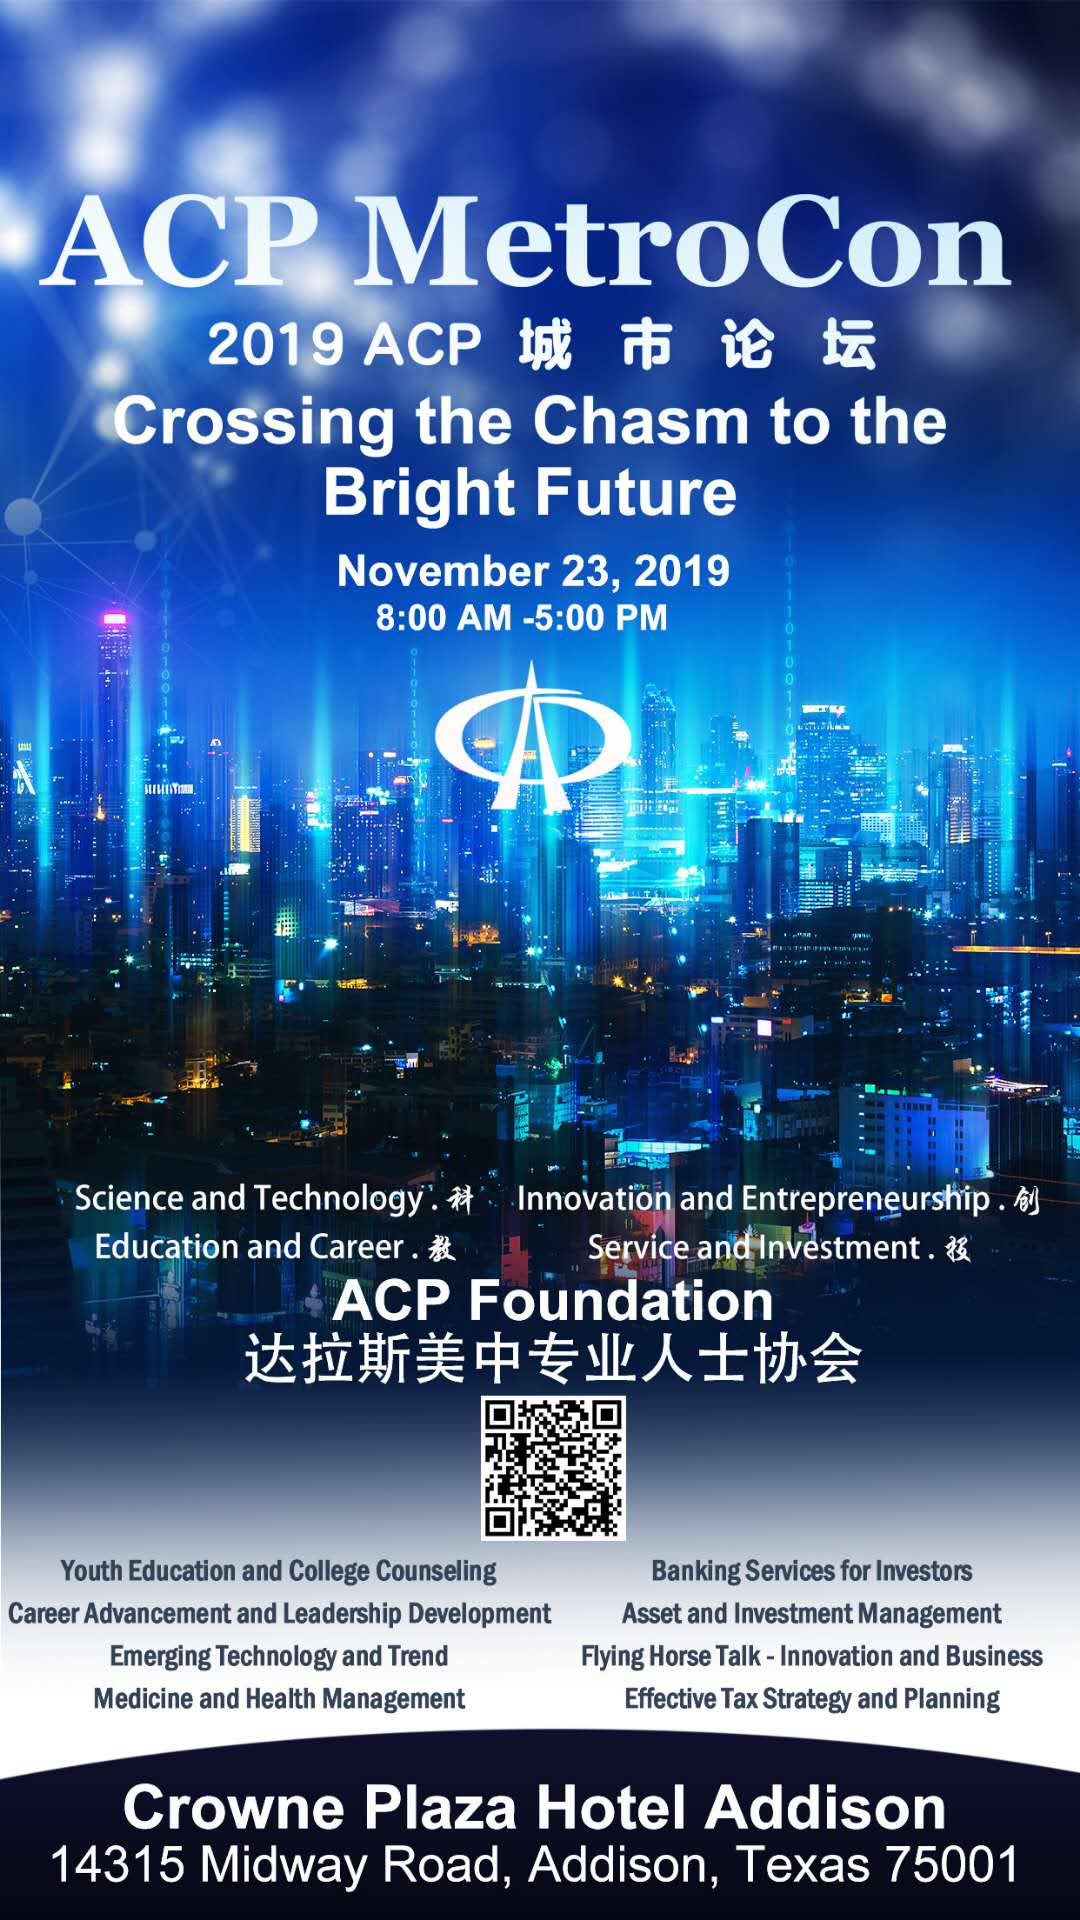 2019 ACP MetroCon 城市论坛 11/23/2019, 8:00 am CST — 9:00pm CST, Crowne Plaza Hotel Addison, 14315 Midway Road, Addison, Texas 75001